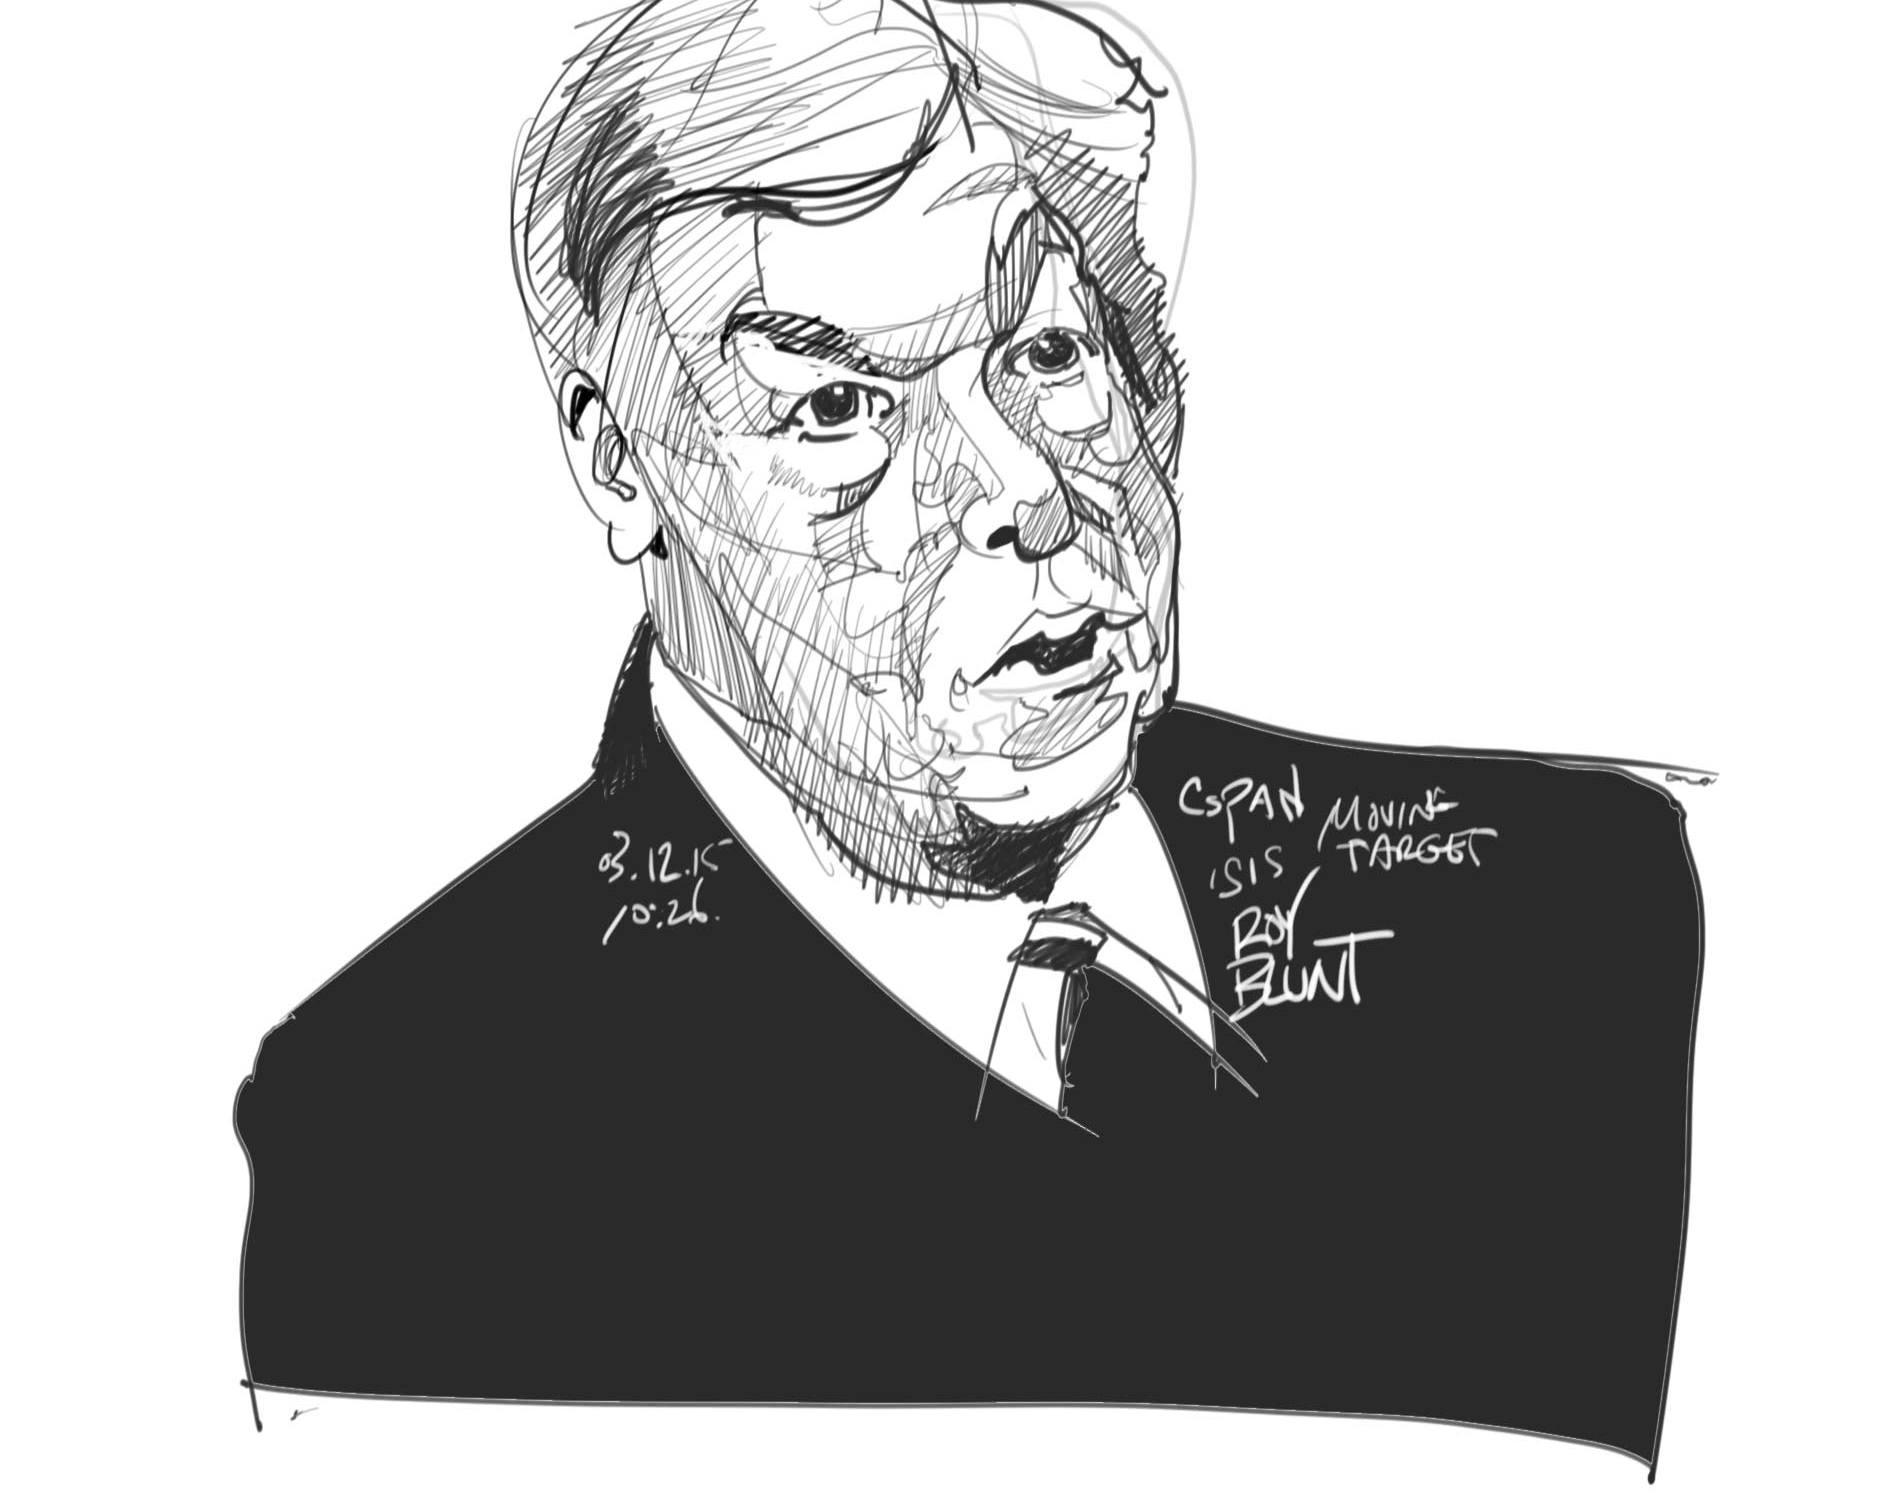 RoyBlunt_combating_isis002